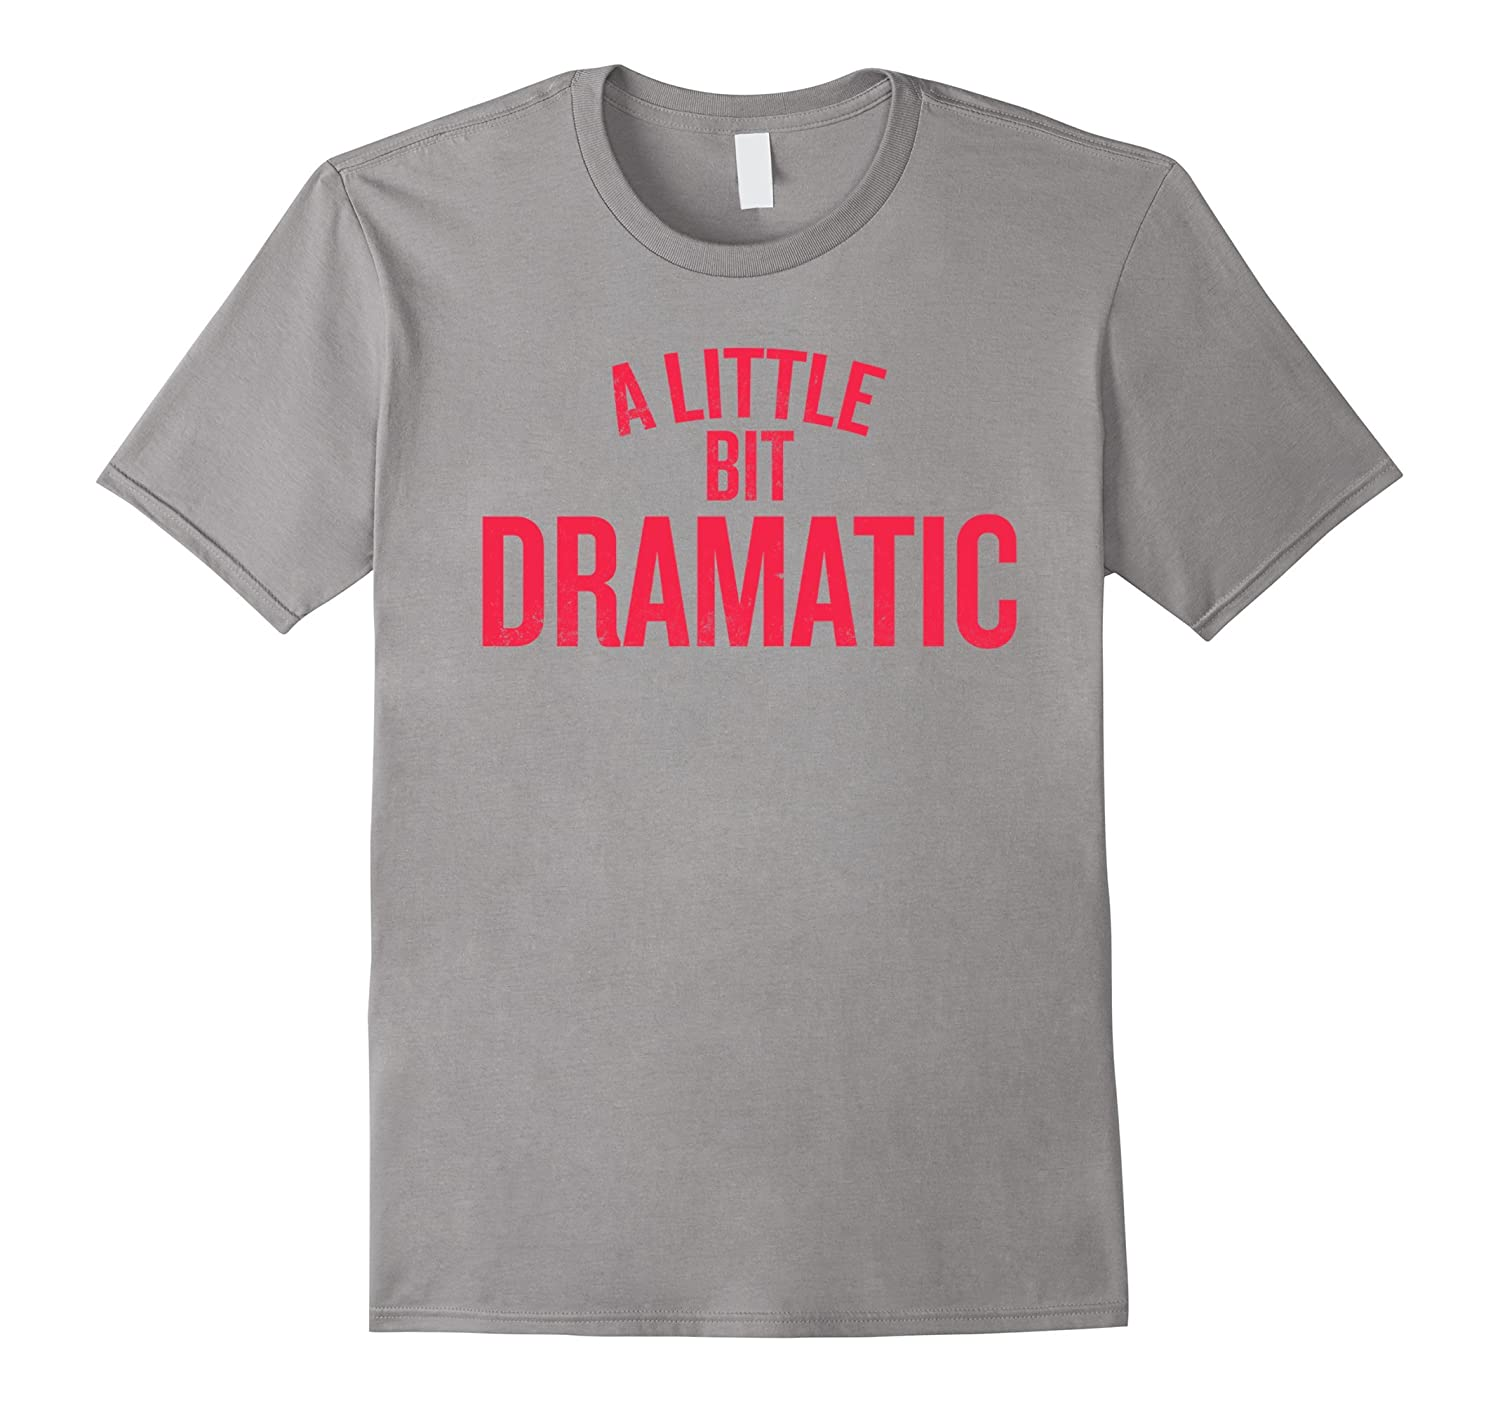 A Little Bit Dramatic Shirt Kids Women Men-FL